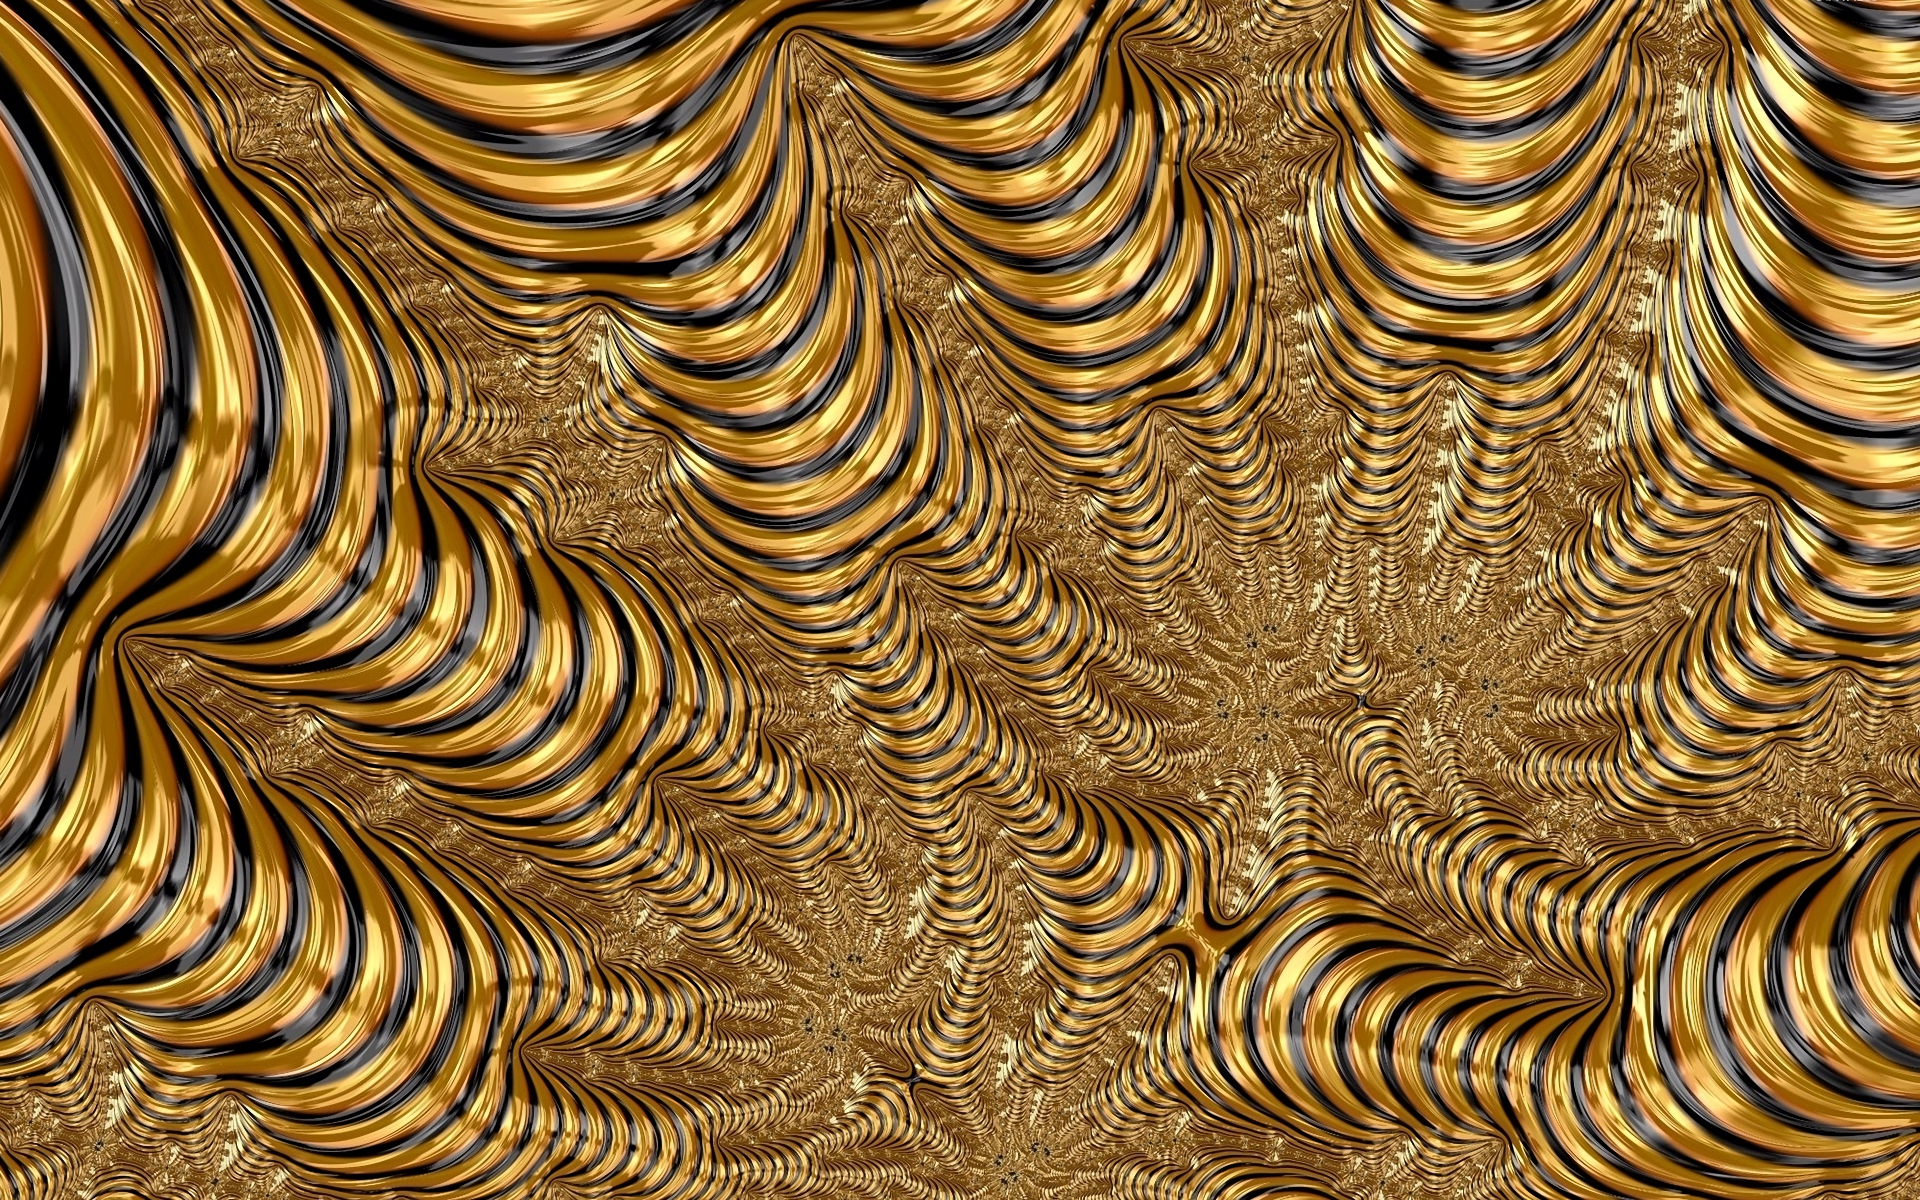 Black and Gold Abstract HD Wallpaper | Background Image ...